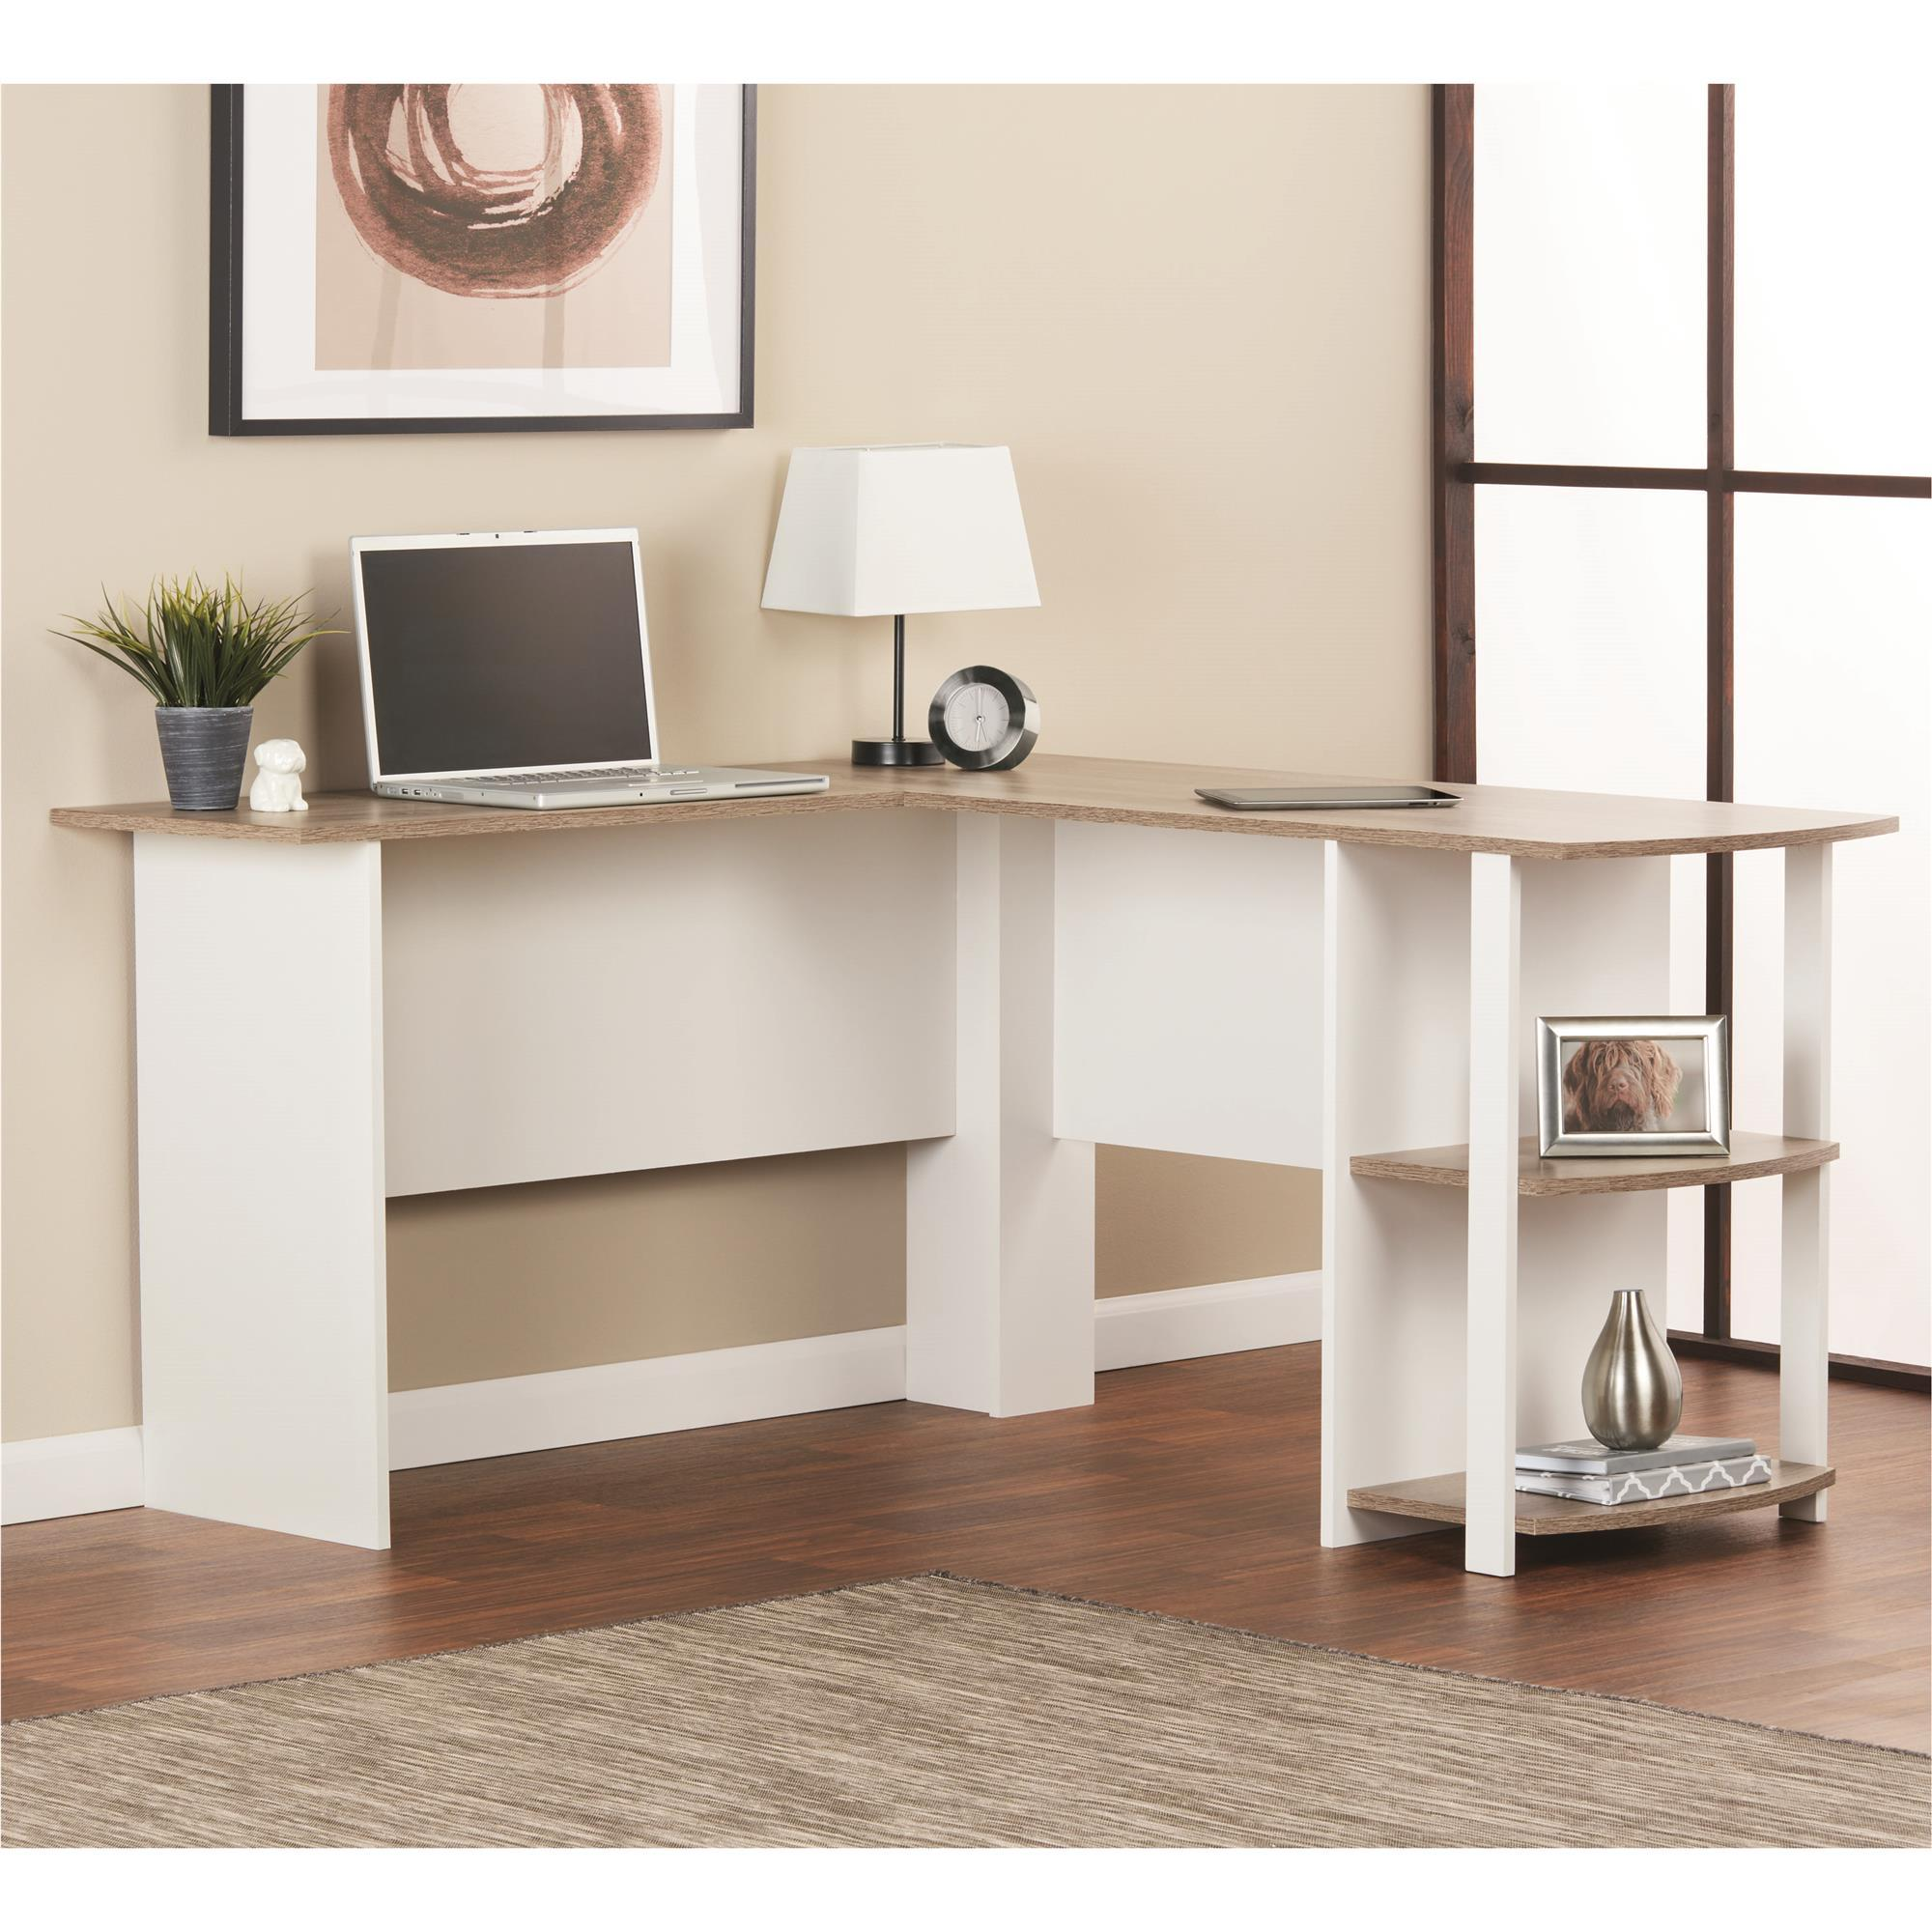 Bedroom Office: Amazon.com: Ameriwood Home Dakota L-Shaped Desk With